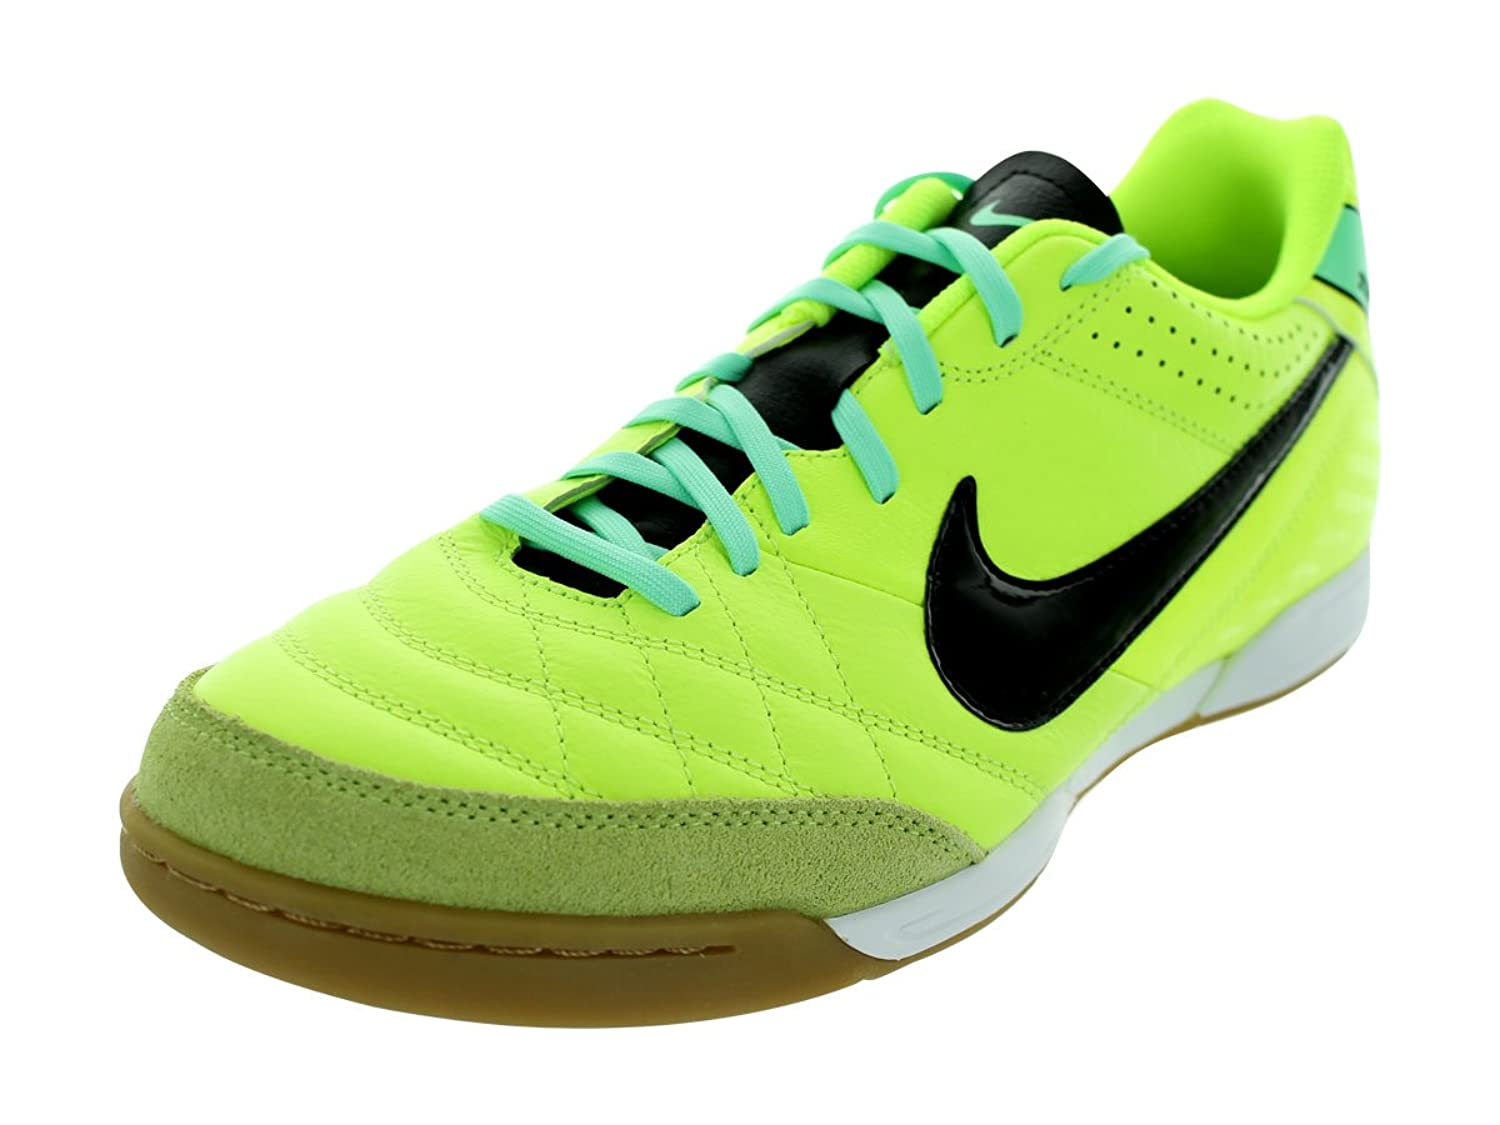 Mens Nike Tiempo Natural IV Leather Indoor Soccer Cleat Volt/Green  Glow/Black